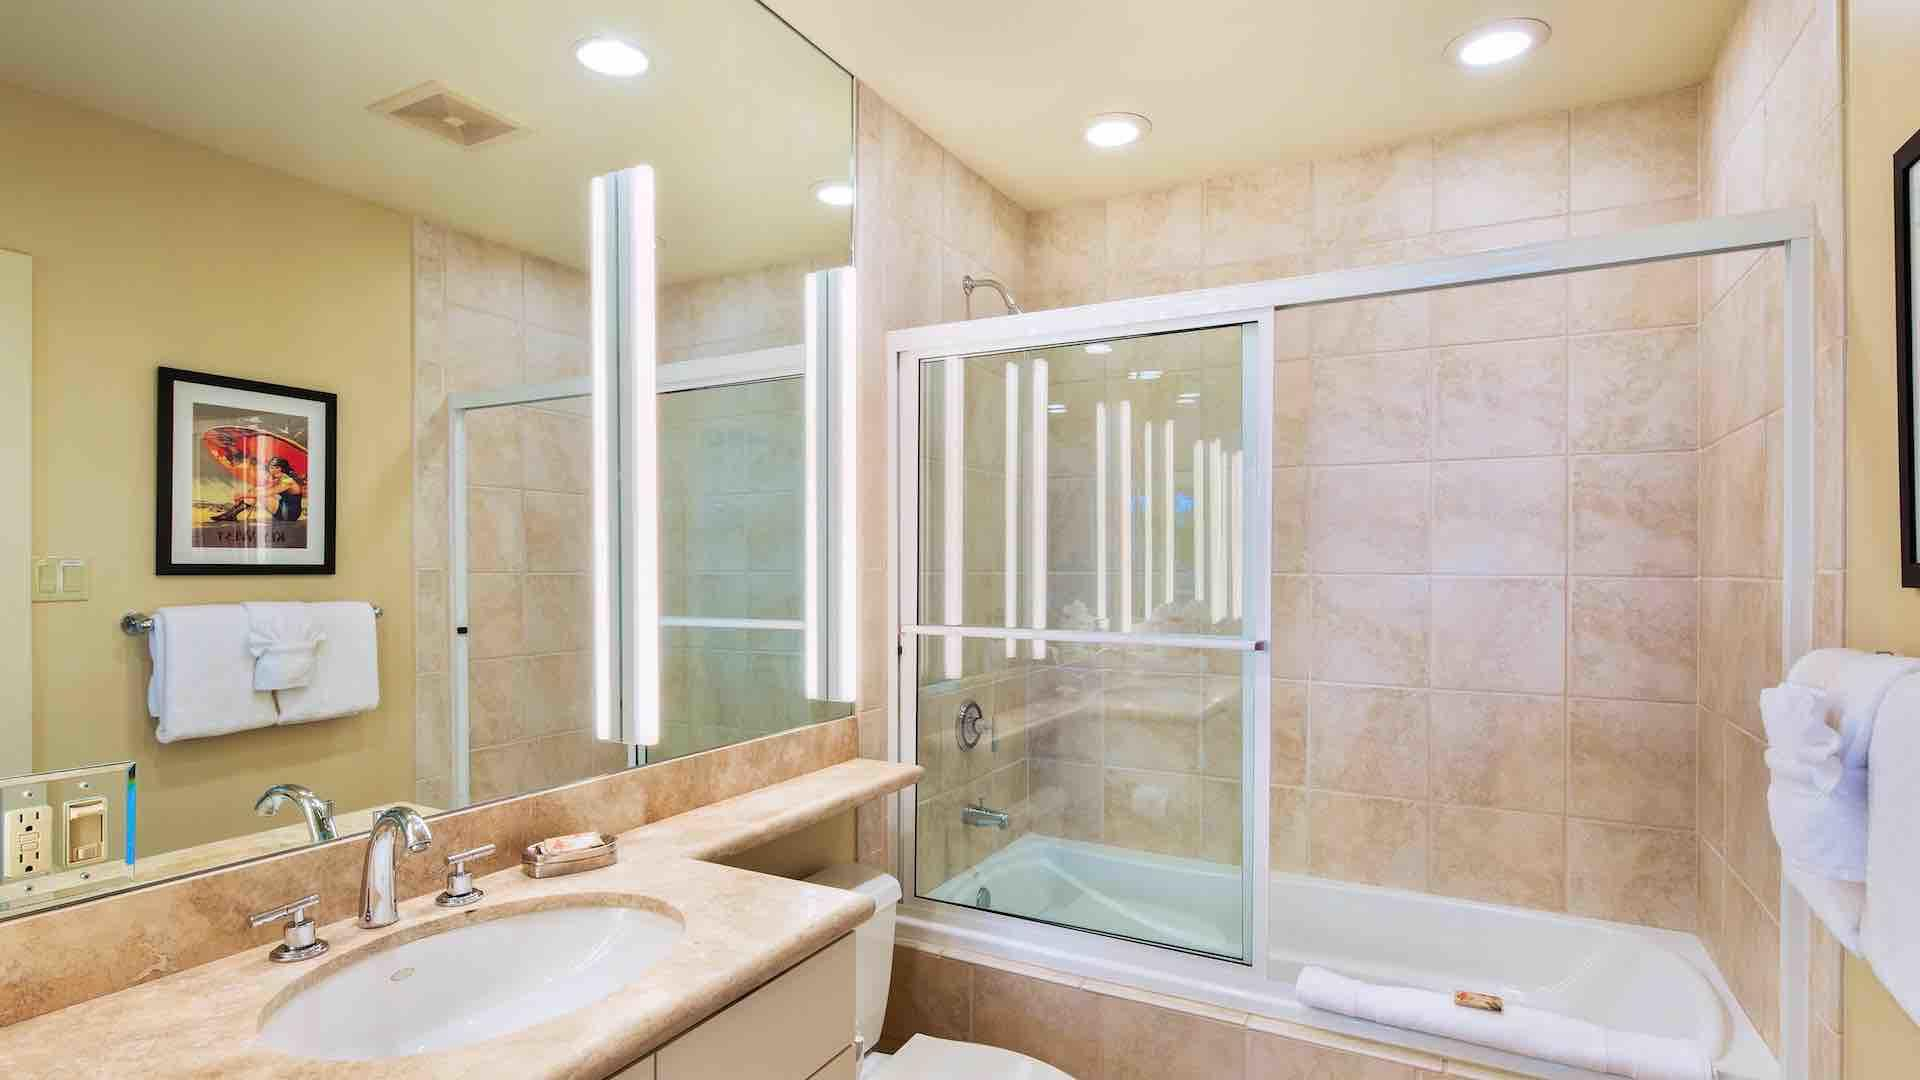 The second bedroom has an en suite bathroom with a glass enclosed tub & shower…